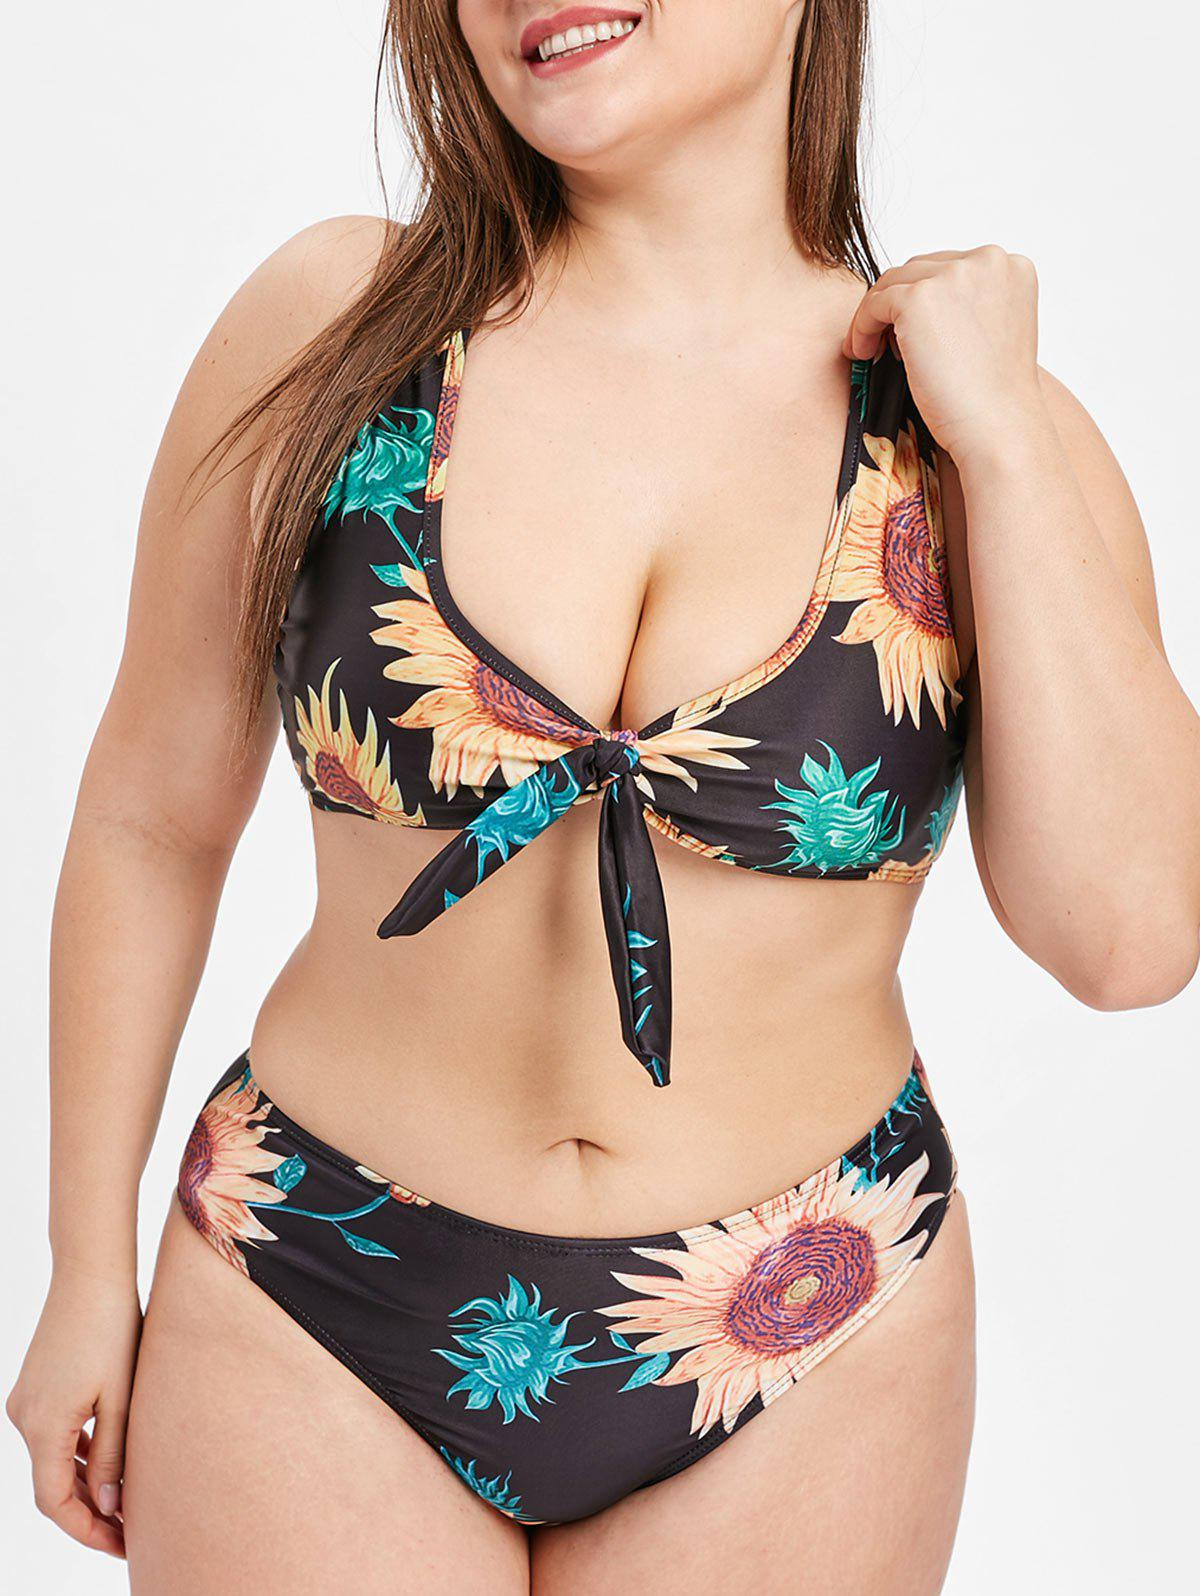 d367d074fdec8 2019 Sunflower Print Plus Size Knotted Bikini Set